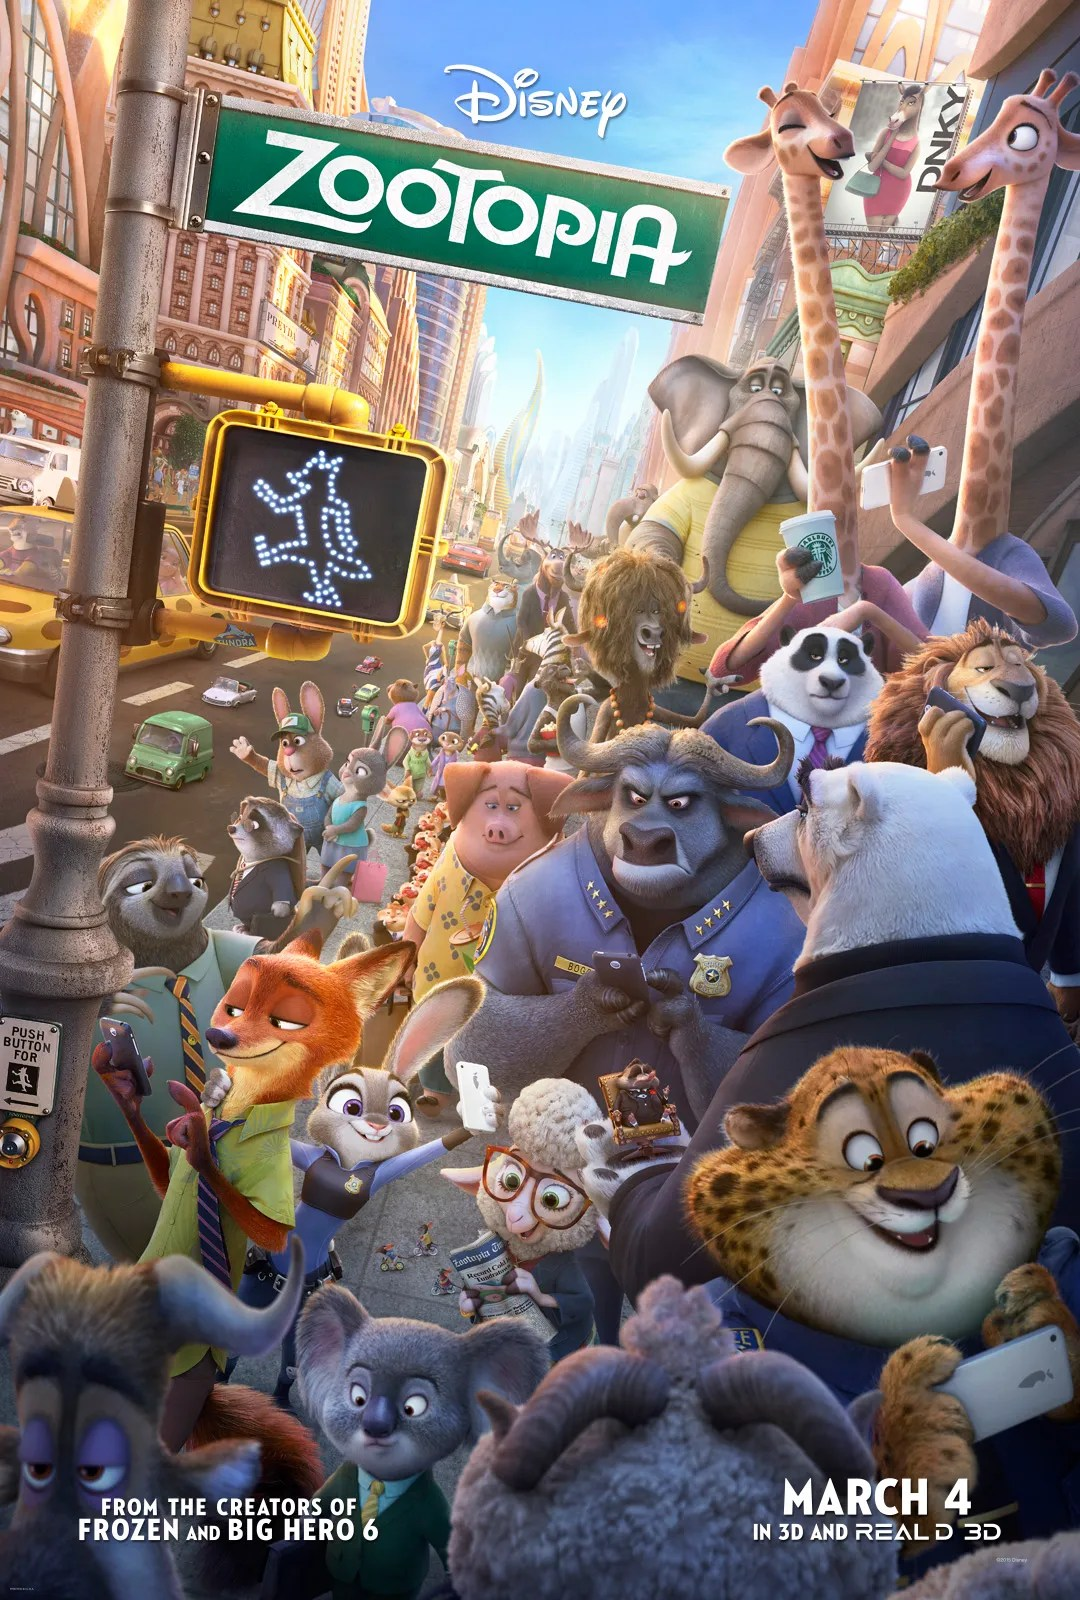 https://i2.wp.com/cdn.collider.com/wp-content/uploads/2015/12/zootopia-movie-poster.jpg